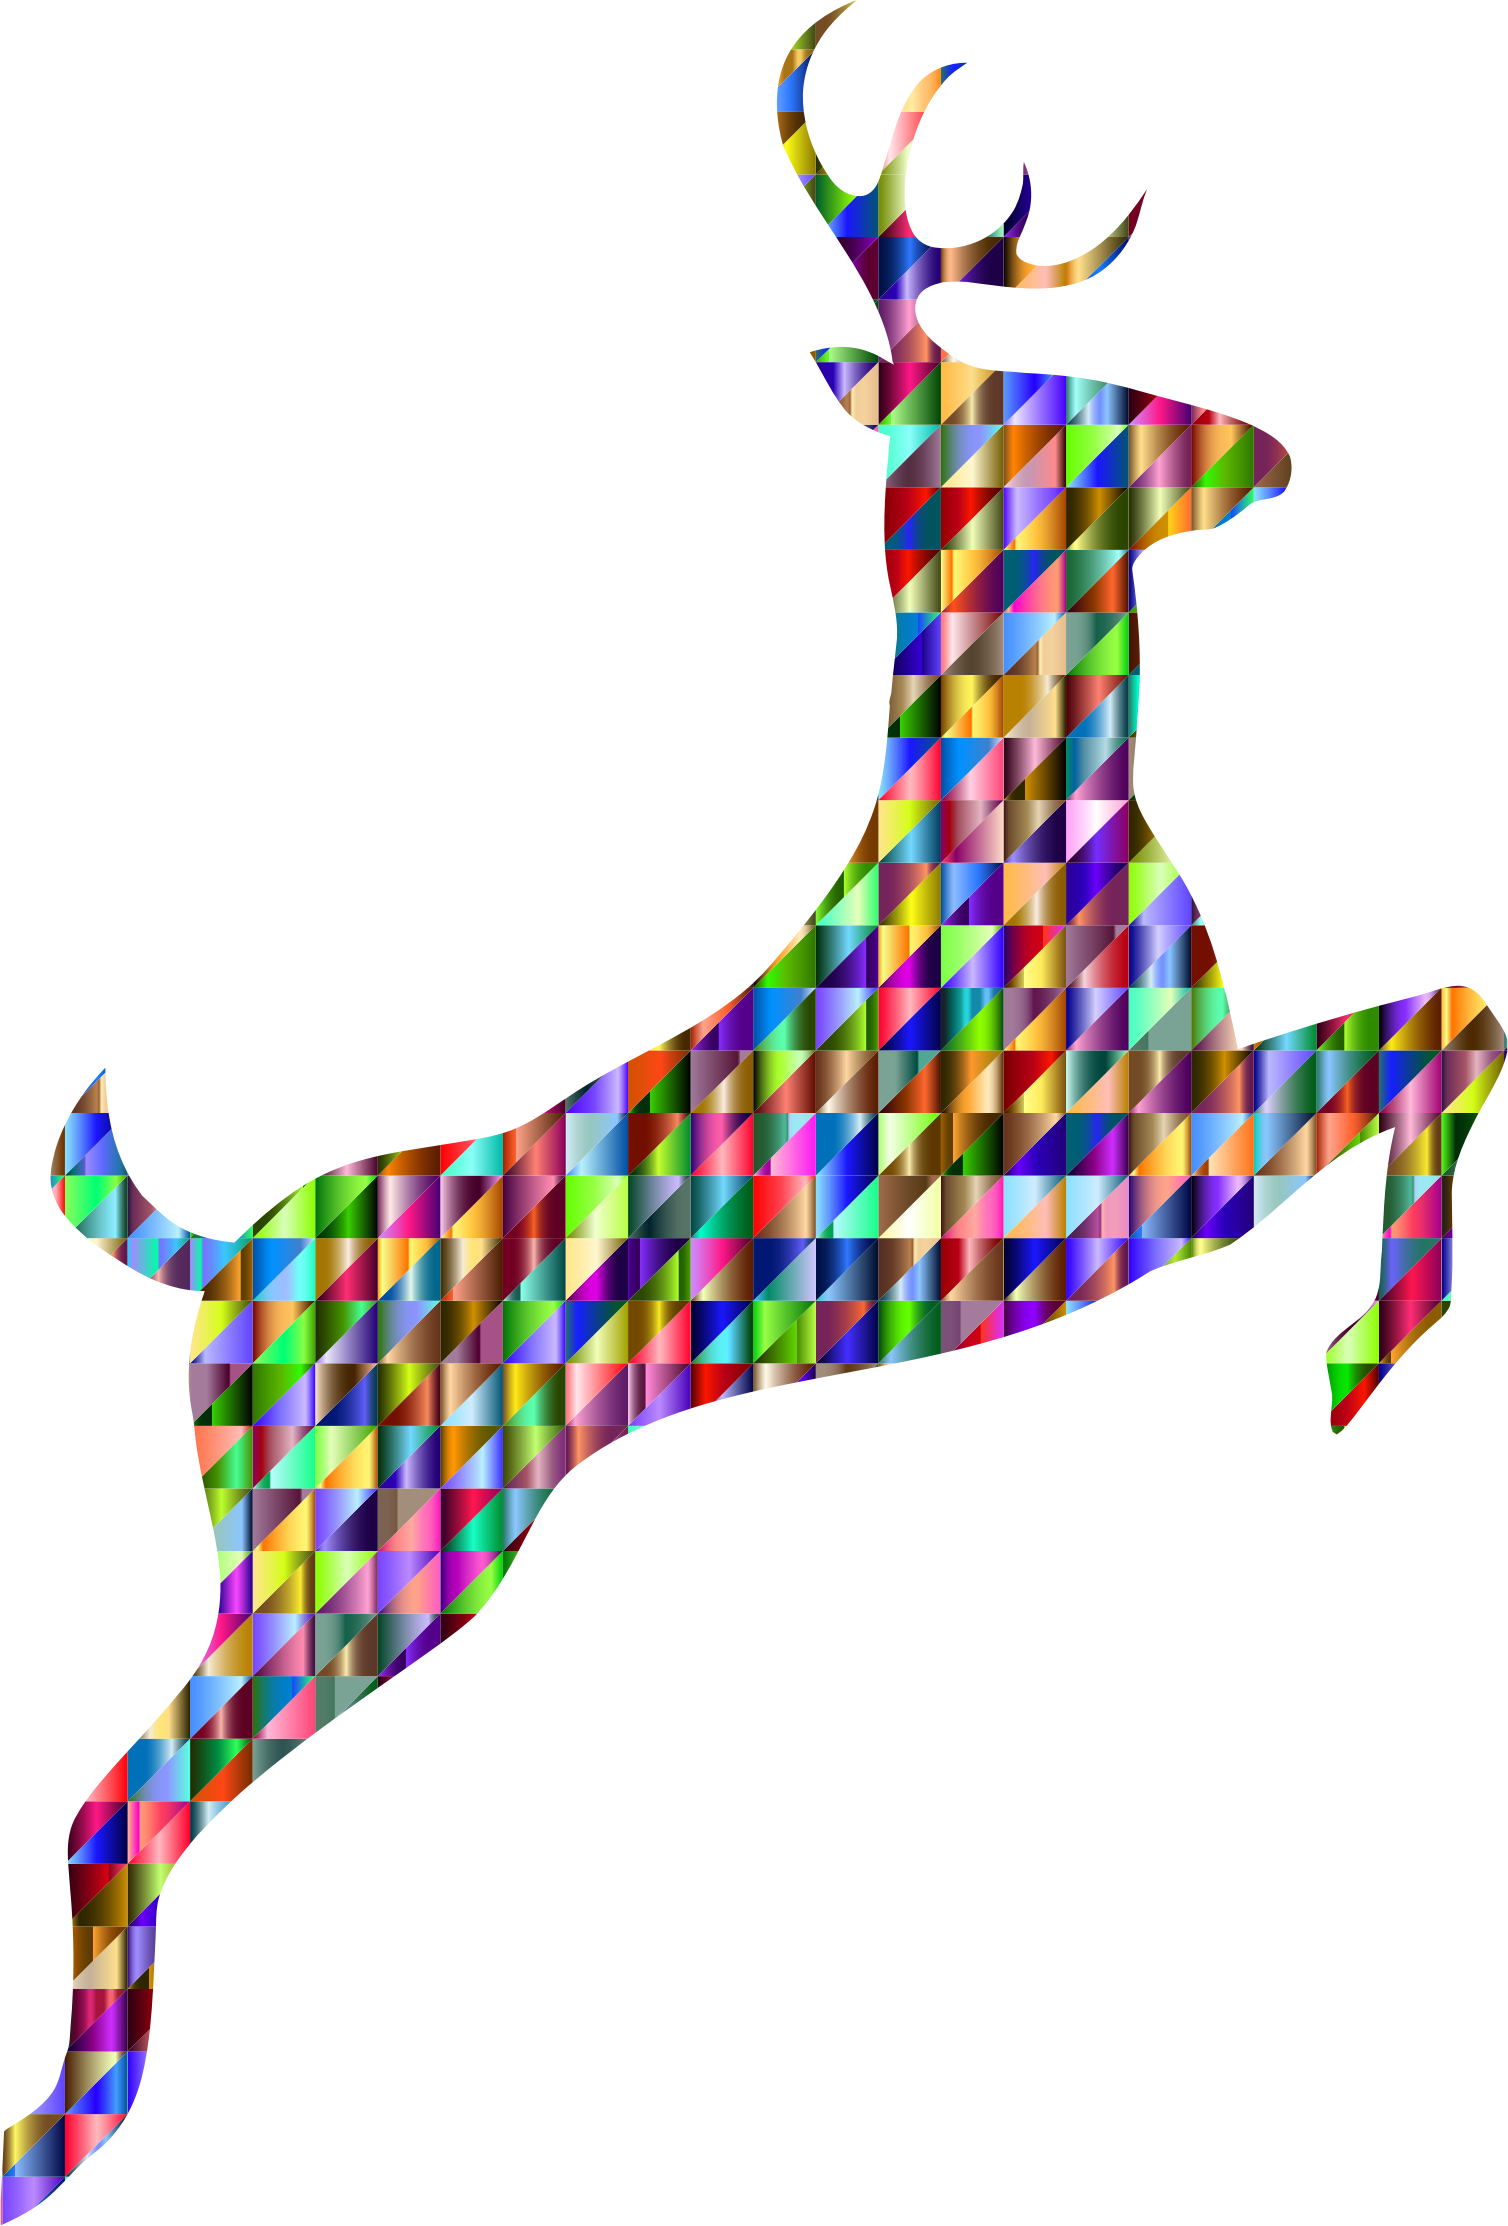 Low Poly Iridescent Leaping Deer Silhouette by GDJ